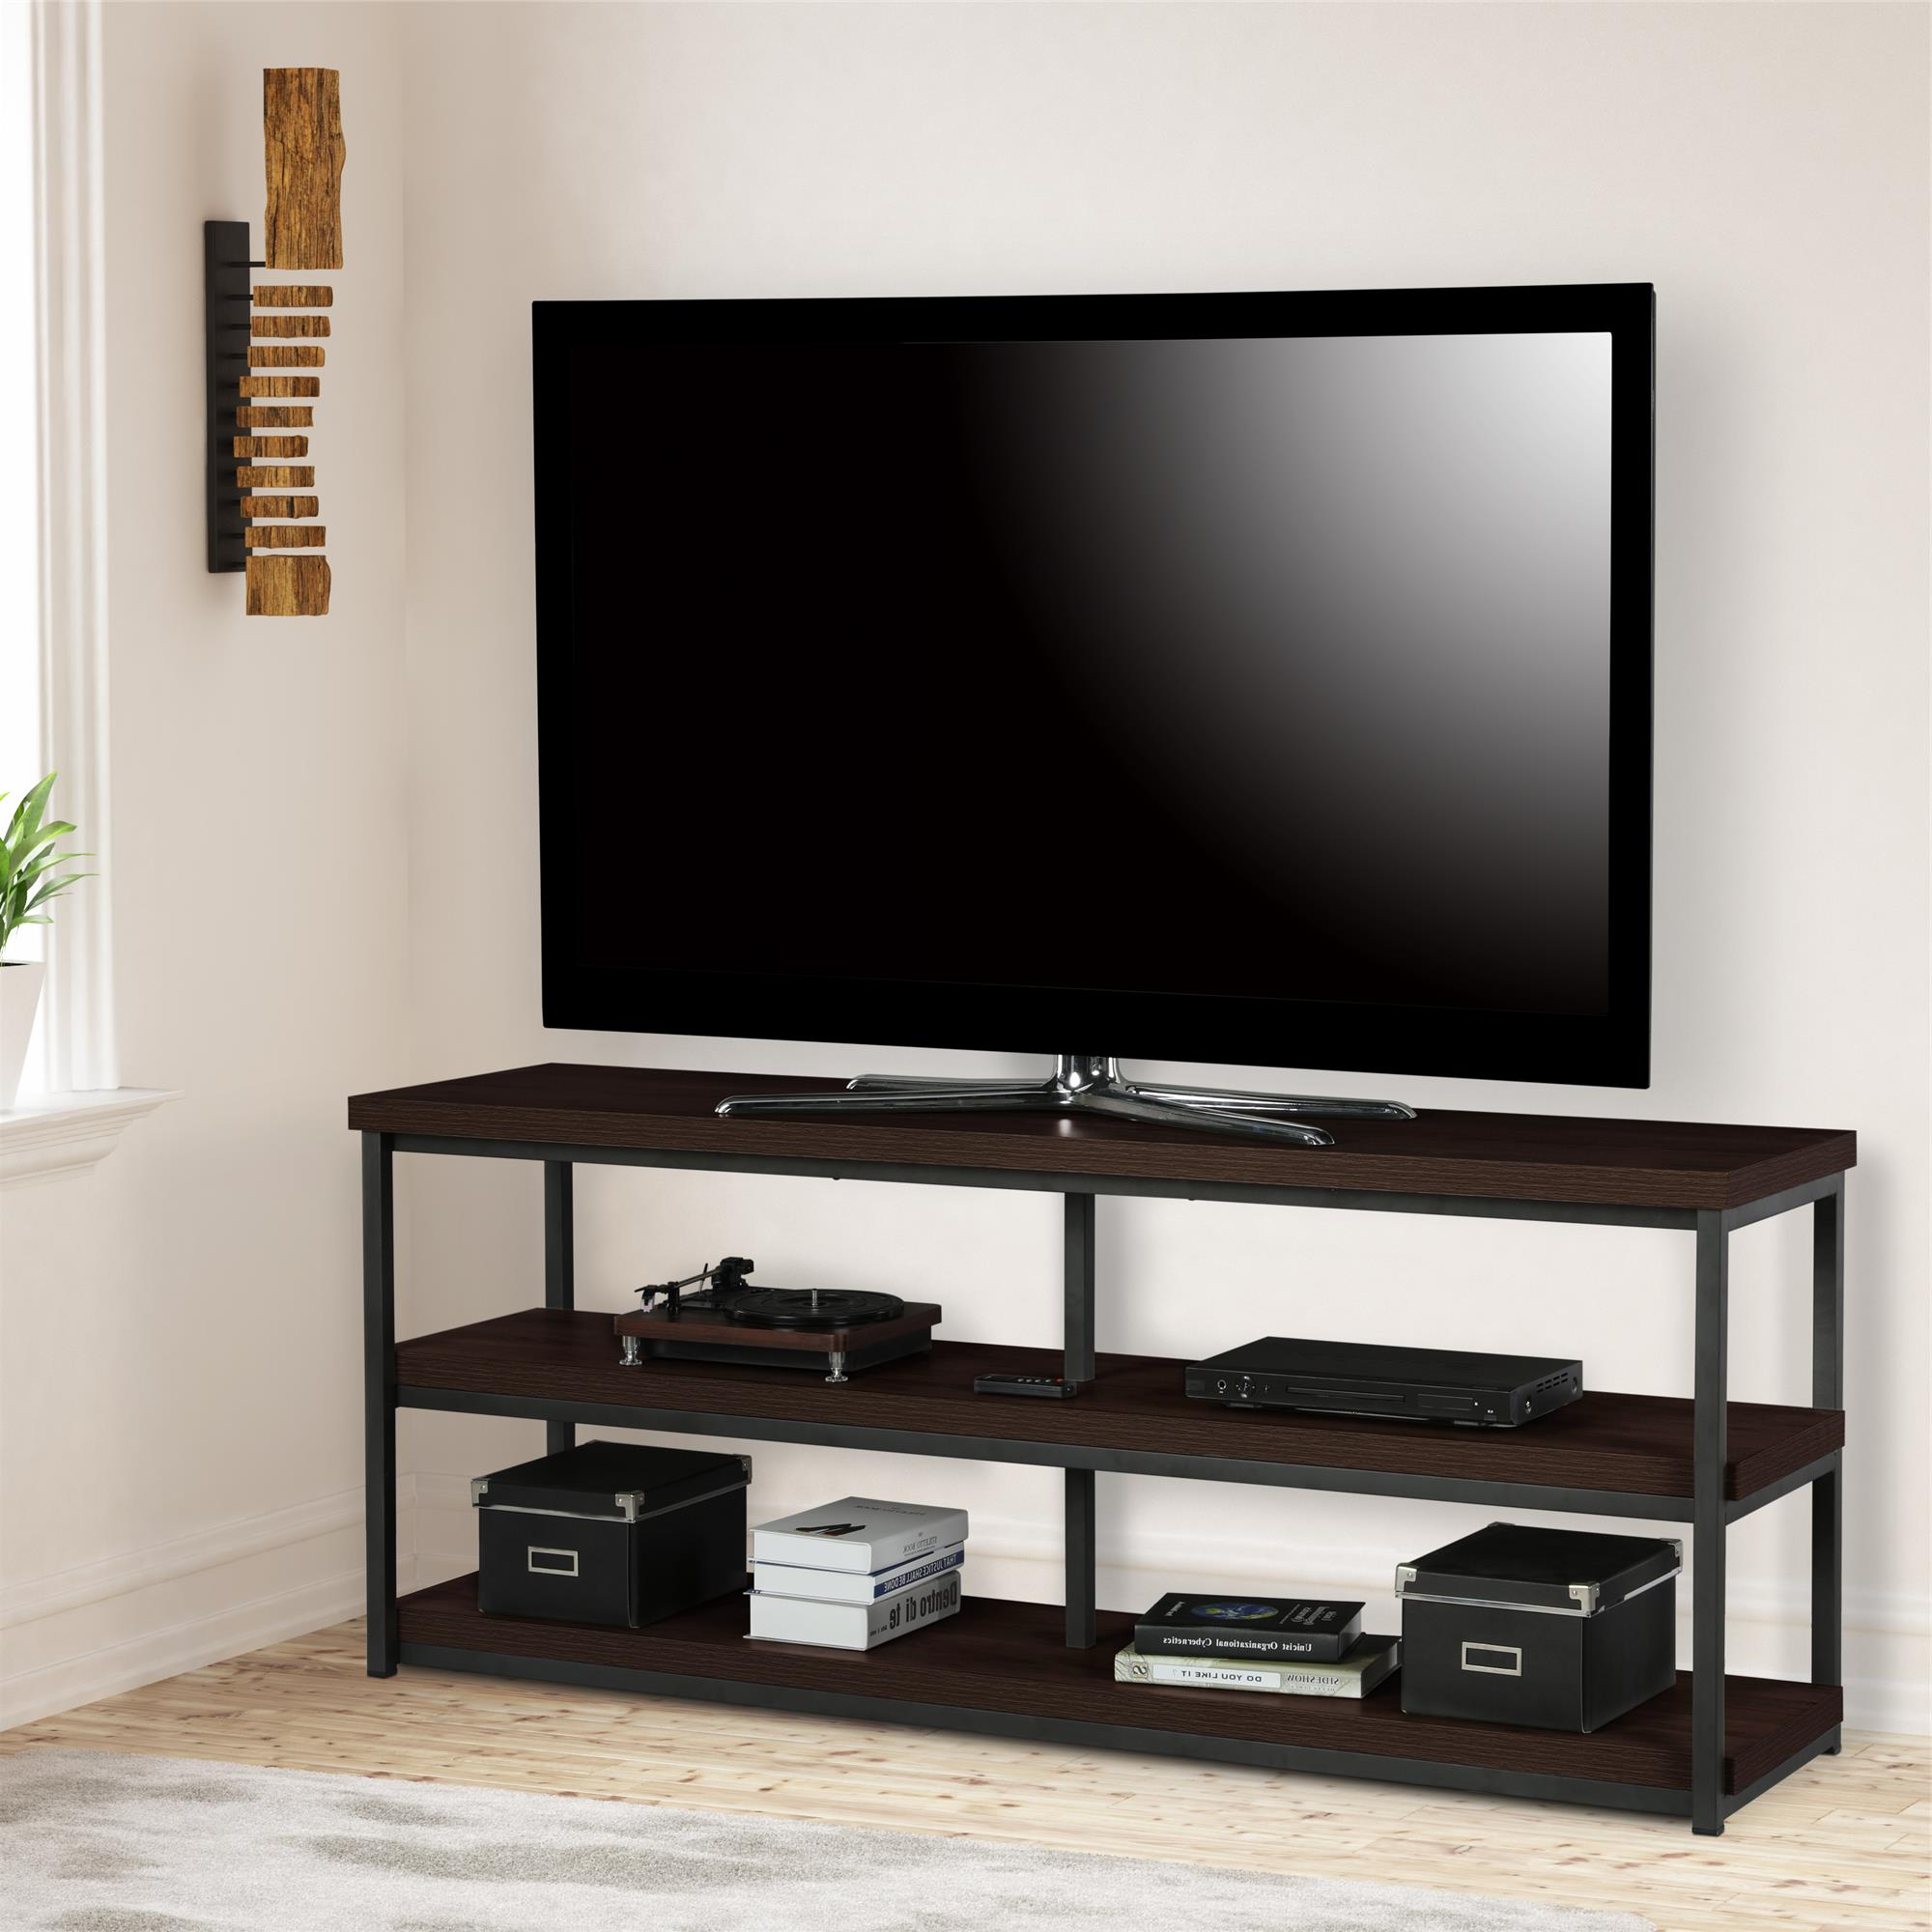 """2019 Buckley Tv Stands For Tvs Up To 65"""" Intended For Ameriwood Home Ashlar Tv Stand For Tvs Up To 65"""", Espresso (View 7 of 20)"""